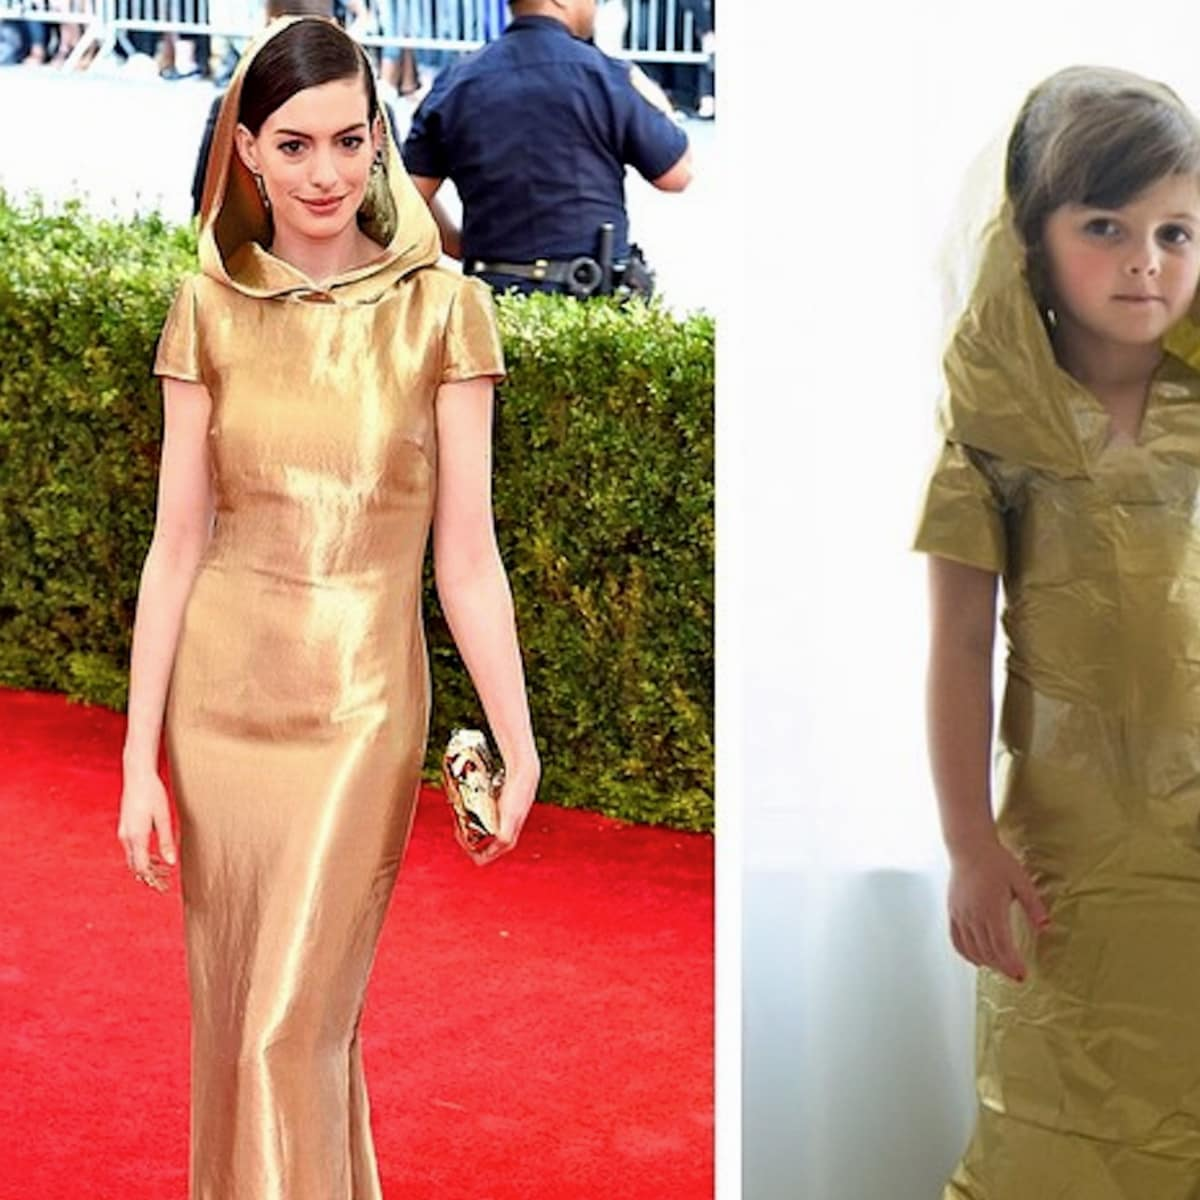 Houston, Crewcut Collection at J Crew, Little Mayhem and Anne Hathaway